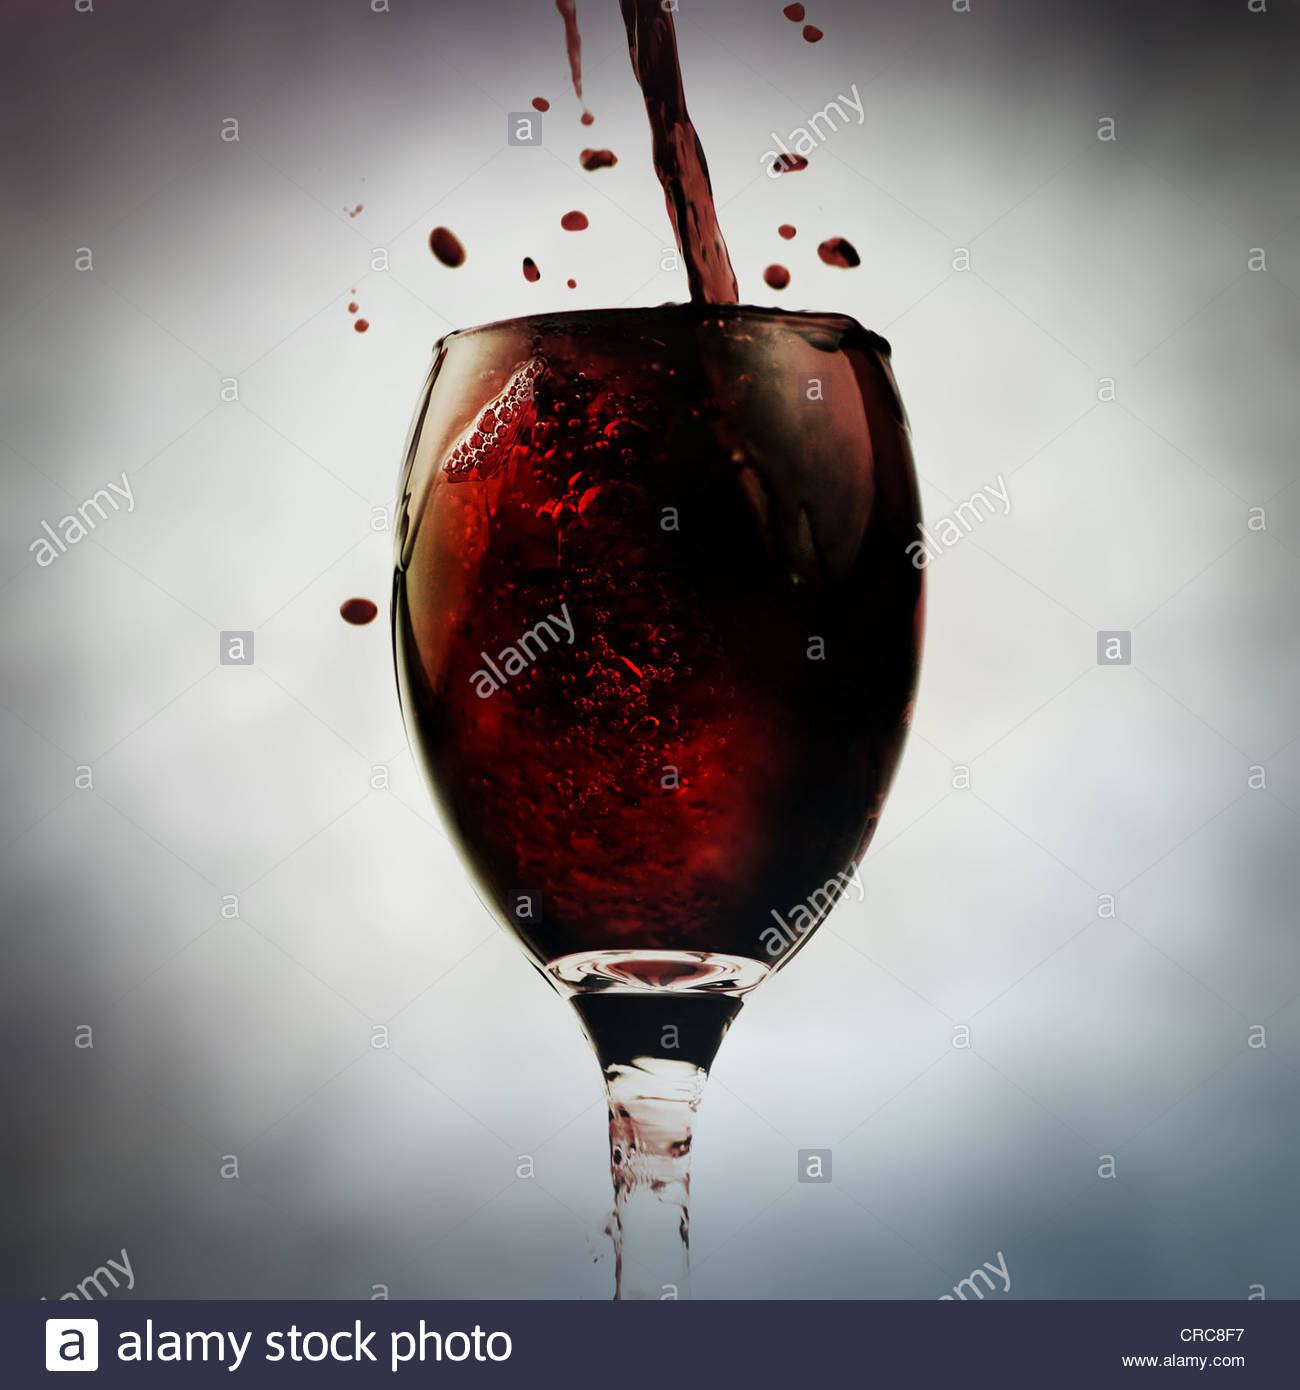 pouring booze - Stock Image